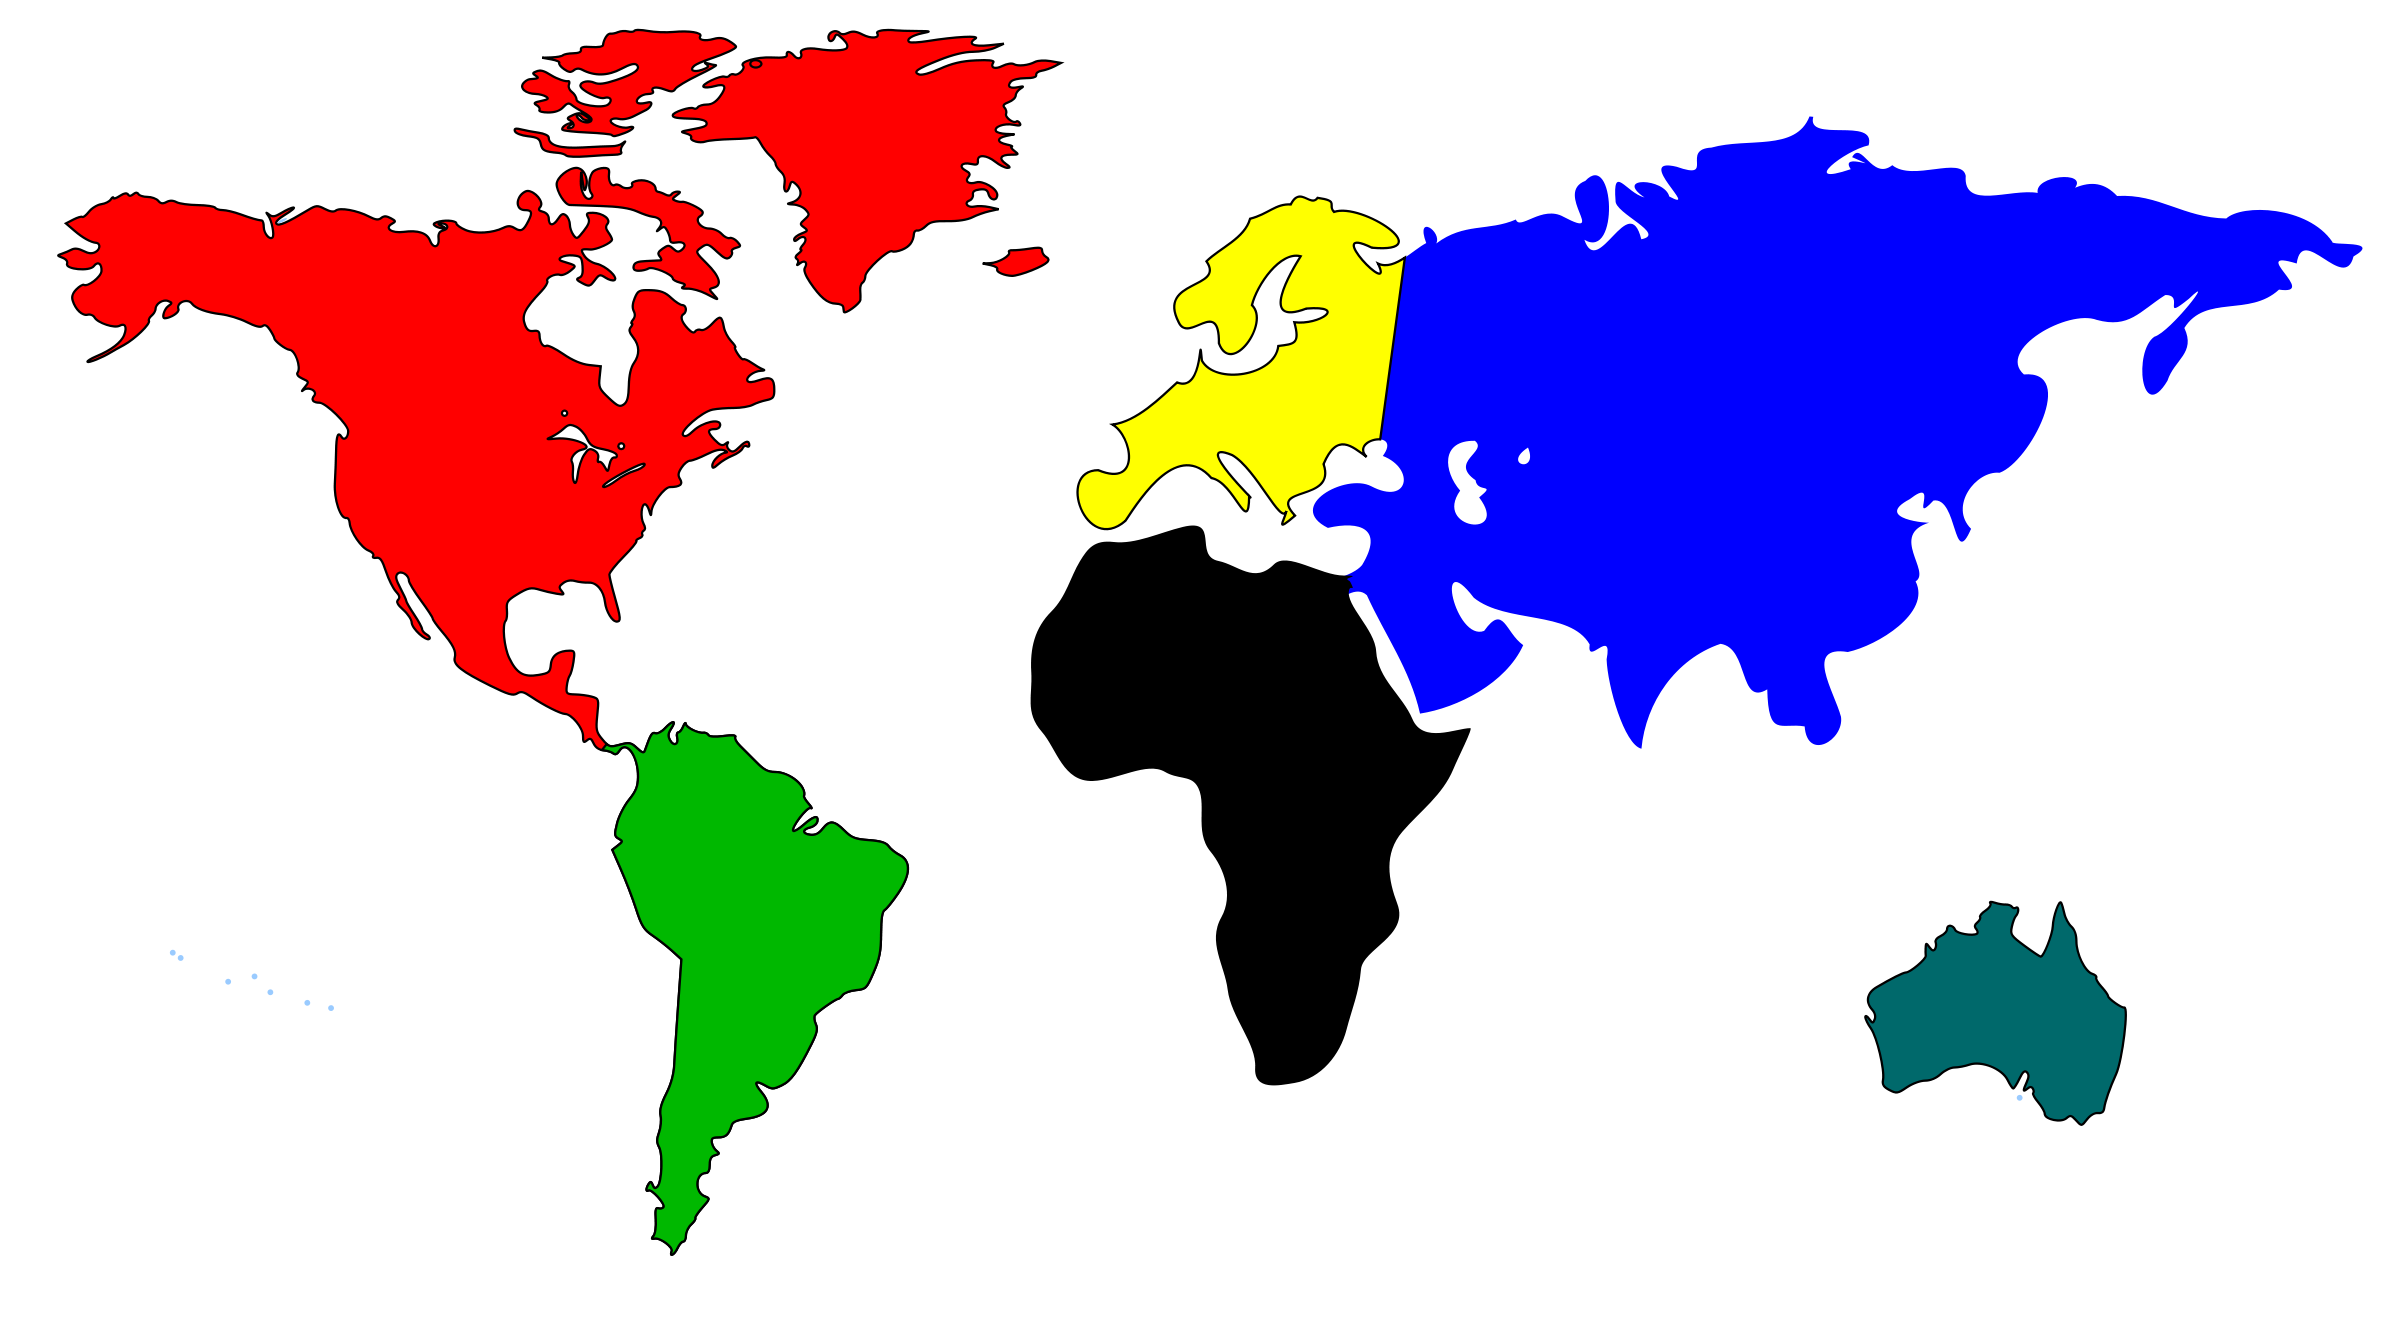 World Map clipart #10, Download drawings